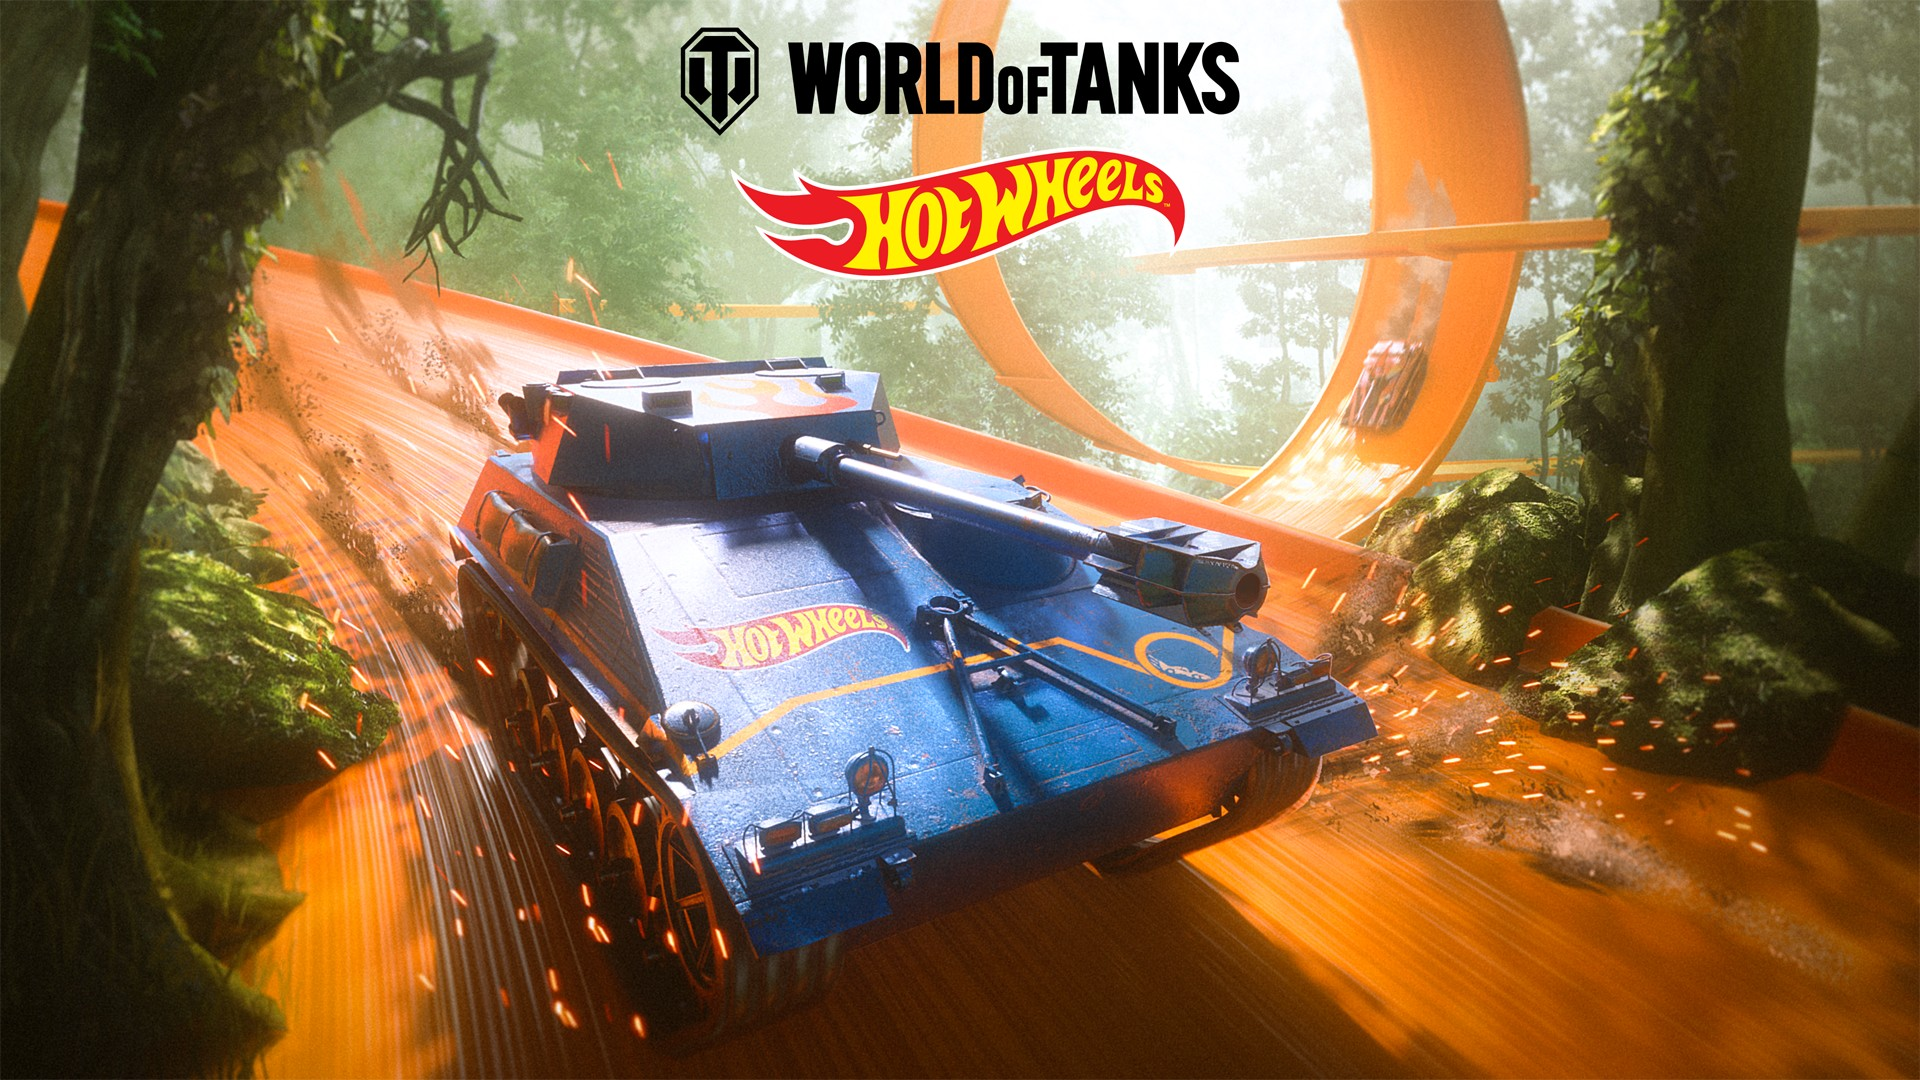 World of Tanks: Hot Wheels